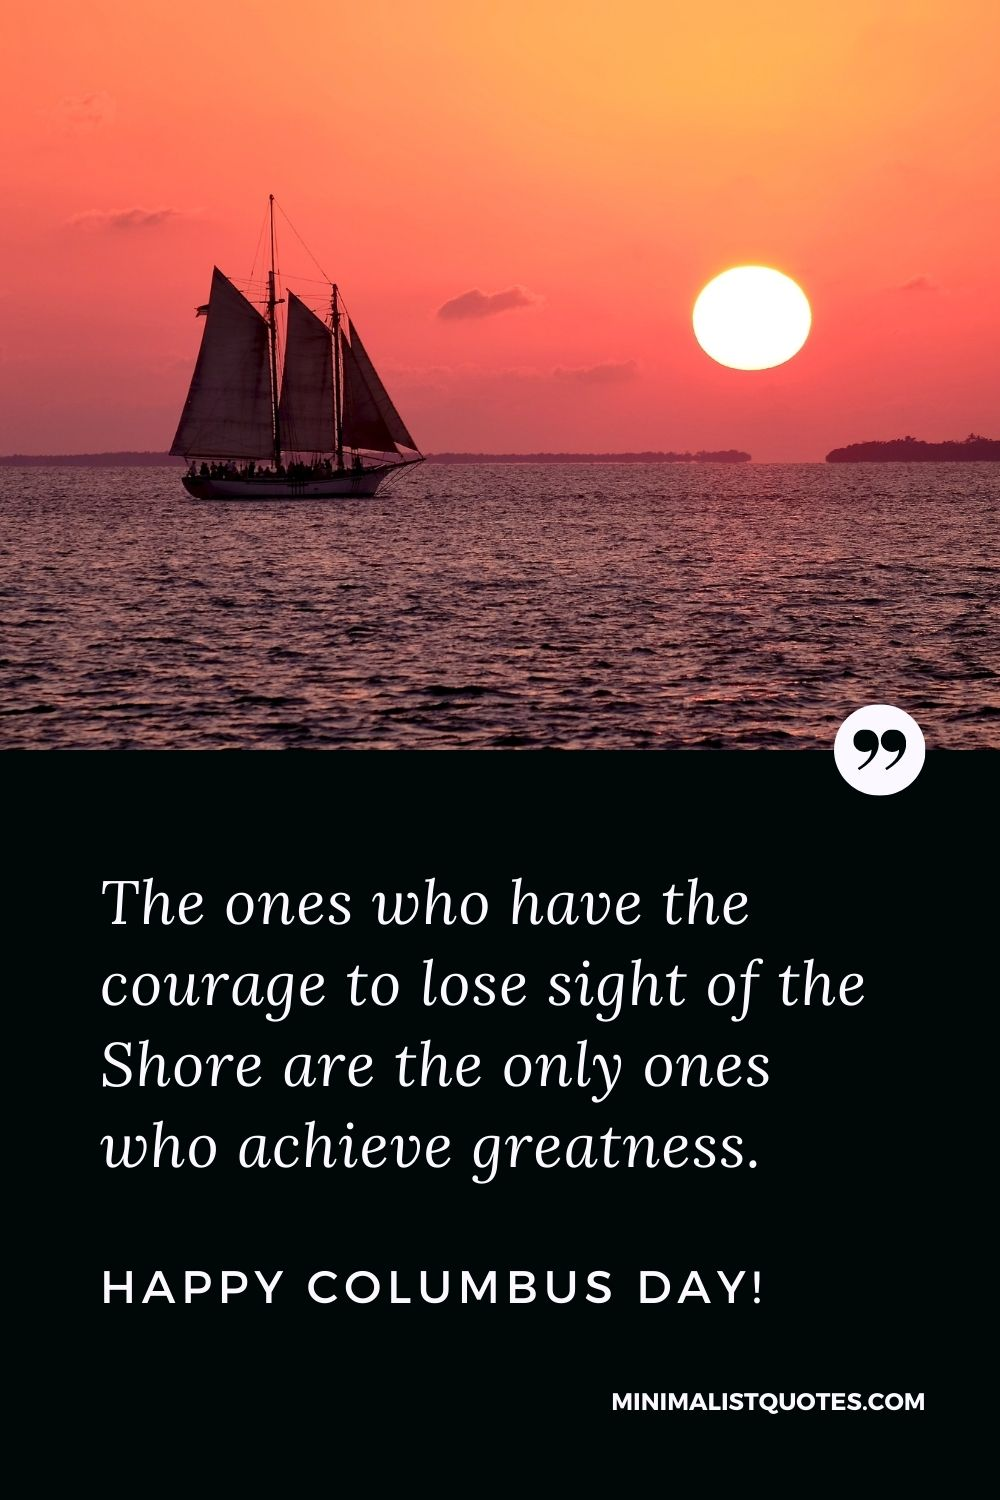 Columbus Day wish, quote & message with image: The ones who have the courage to lose sight of the Shore are the only ones who achieve greatness. Happy Columbus Day!